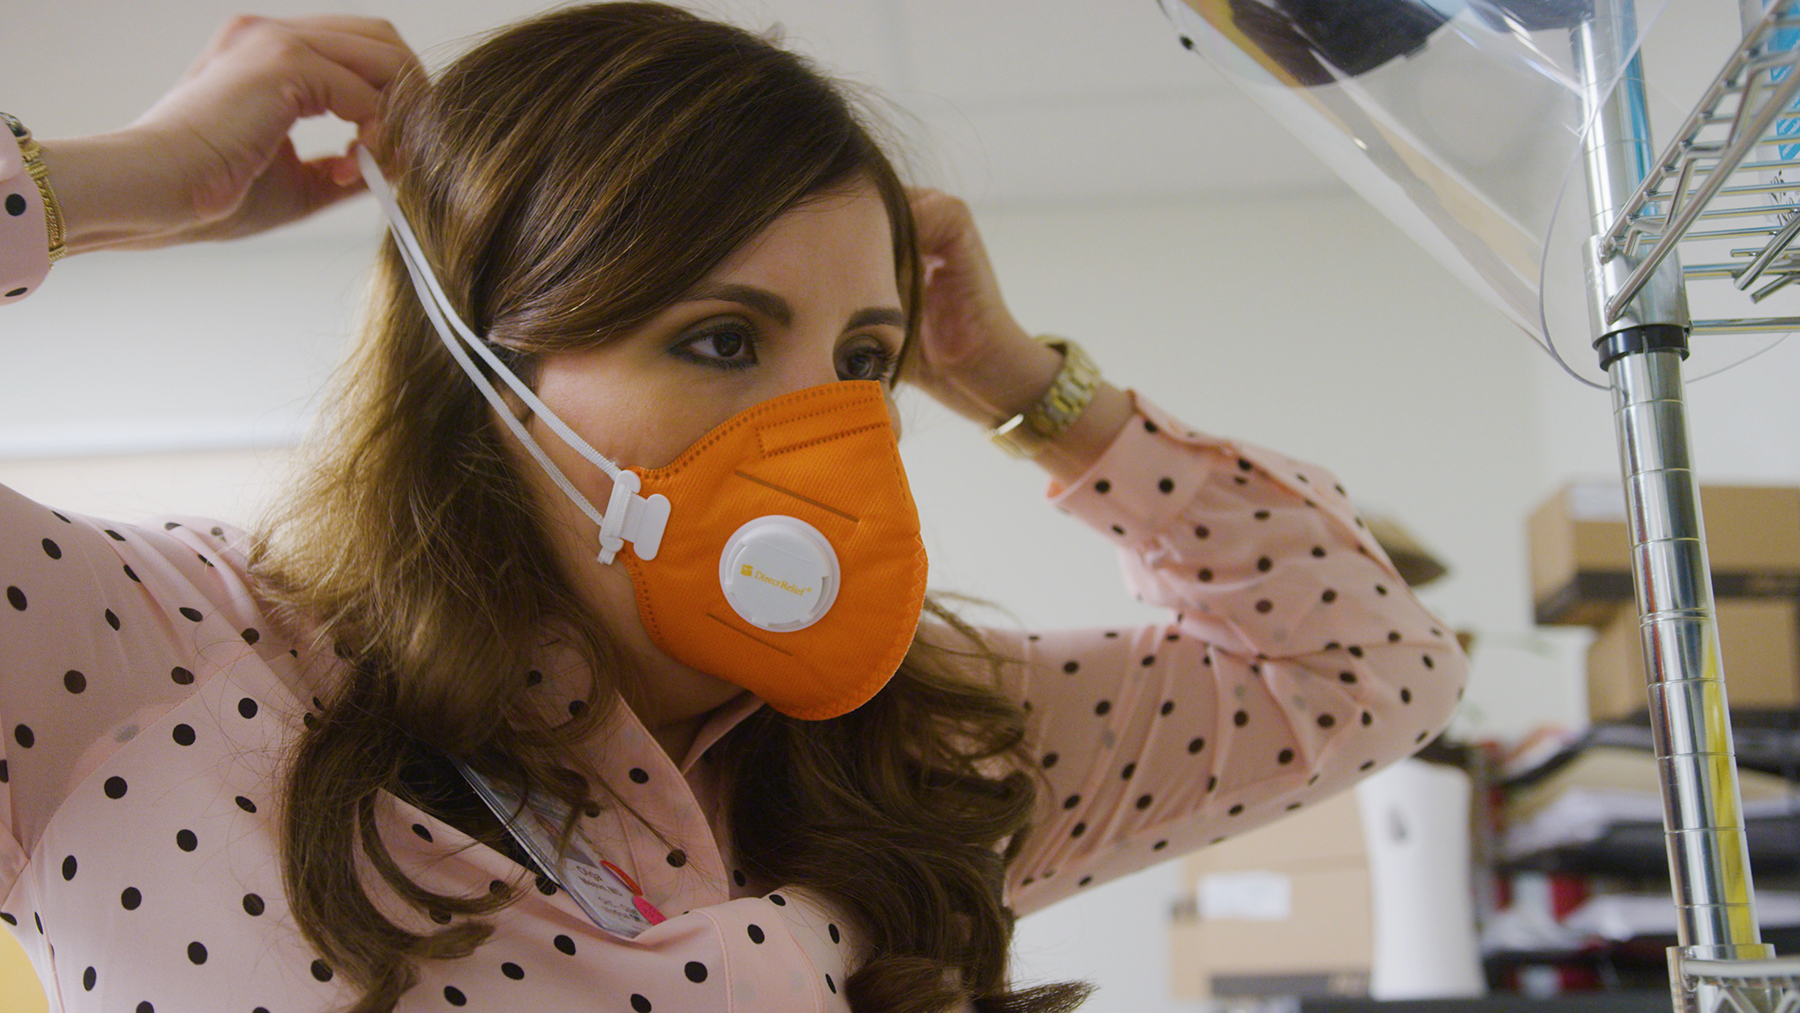 Dr. Olga Meave puts on a fresh mask. (Photo by Oliver Riley-Smith for Direct Relief)